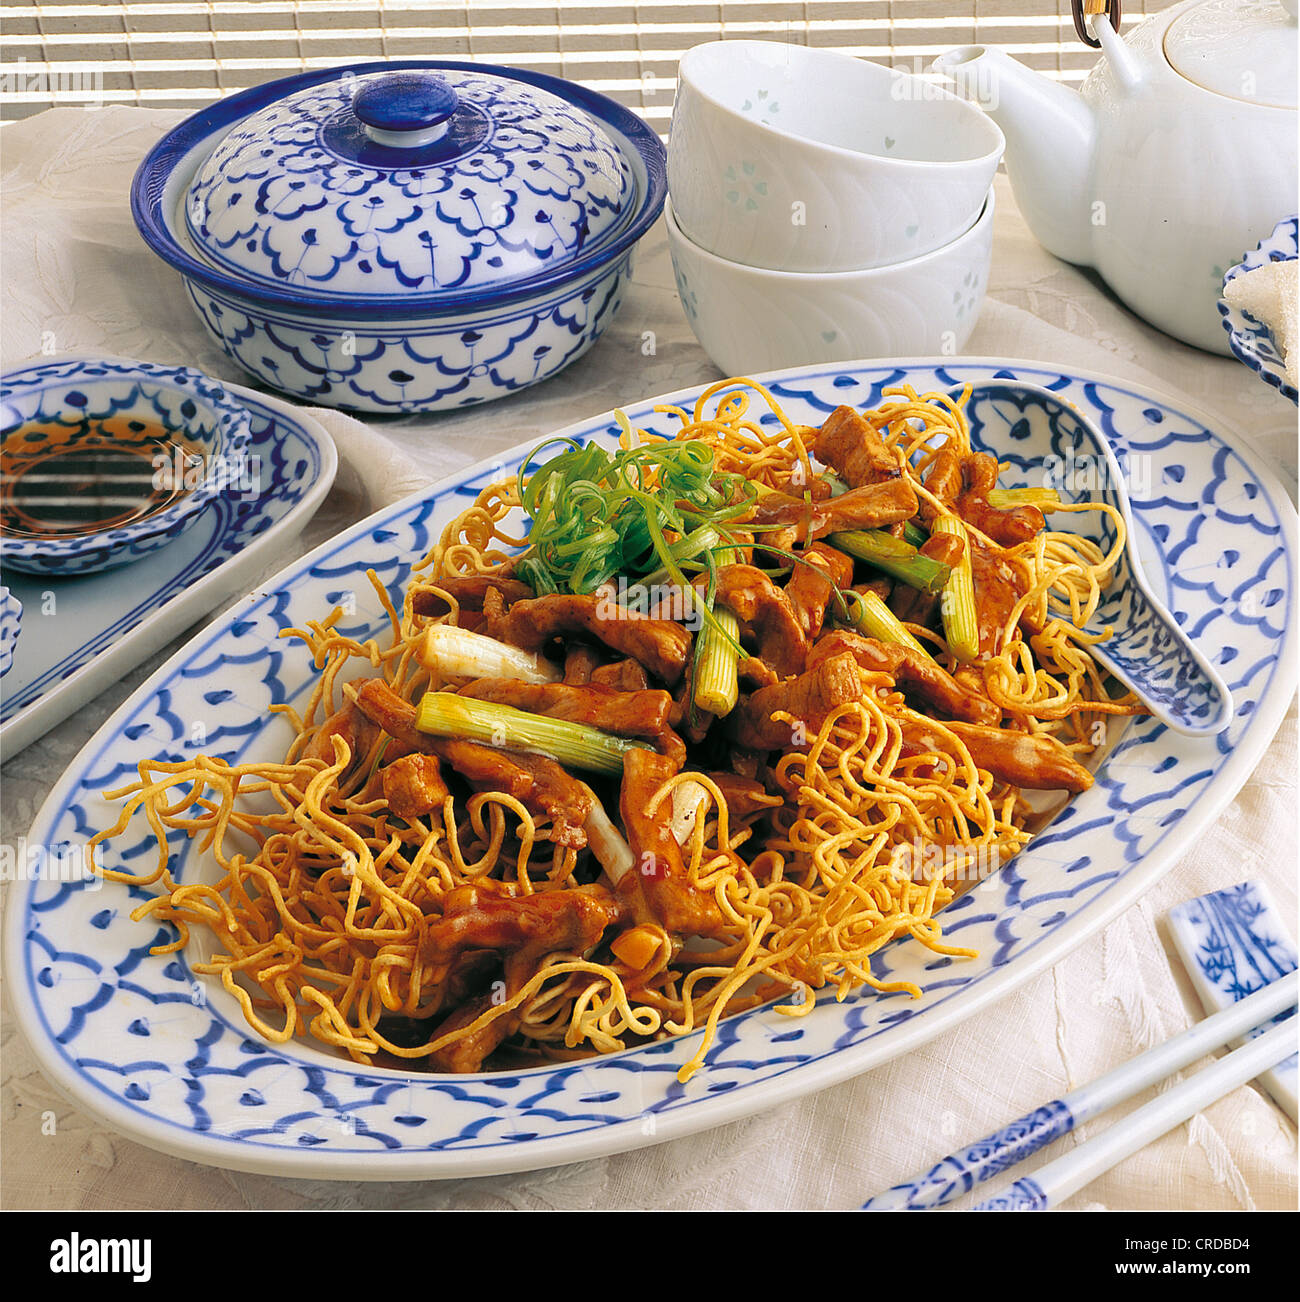 Wok noodles with pork china recipe available for a fee stock photo wok noodles with pork china recipe available for a fee forumfinder Image collections